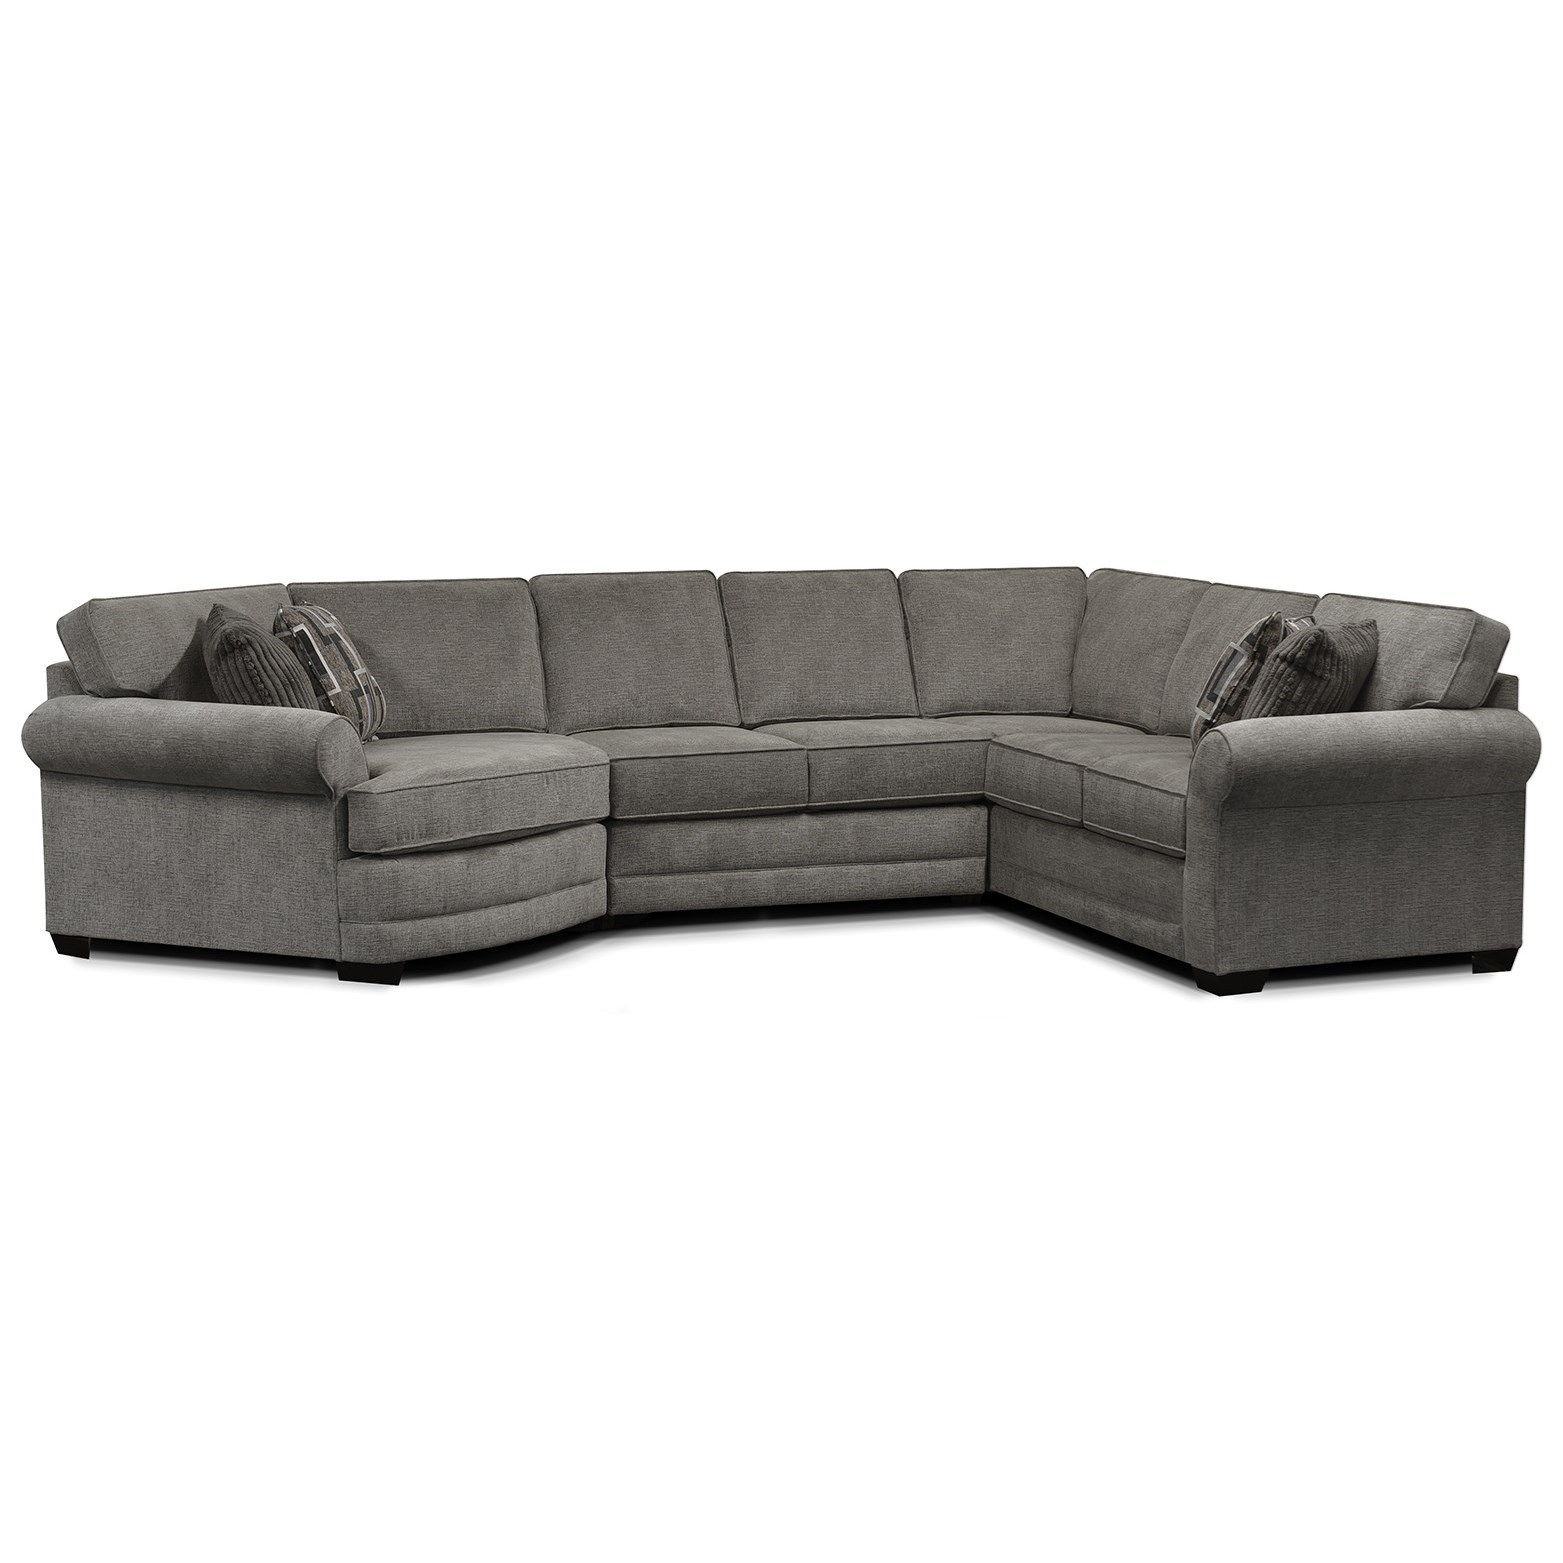 Brantley 4-Piece Sectional by England at Rooms and Rest